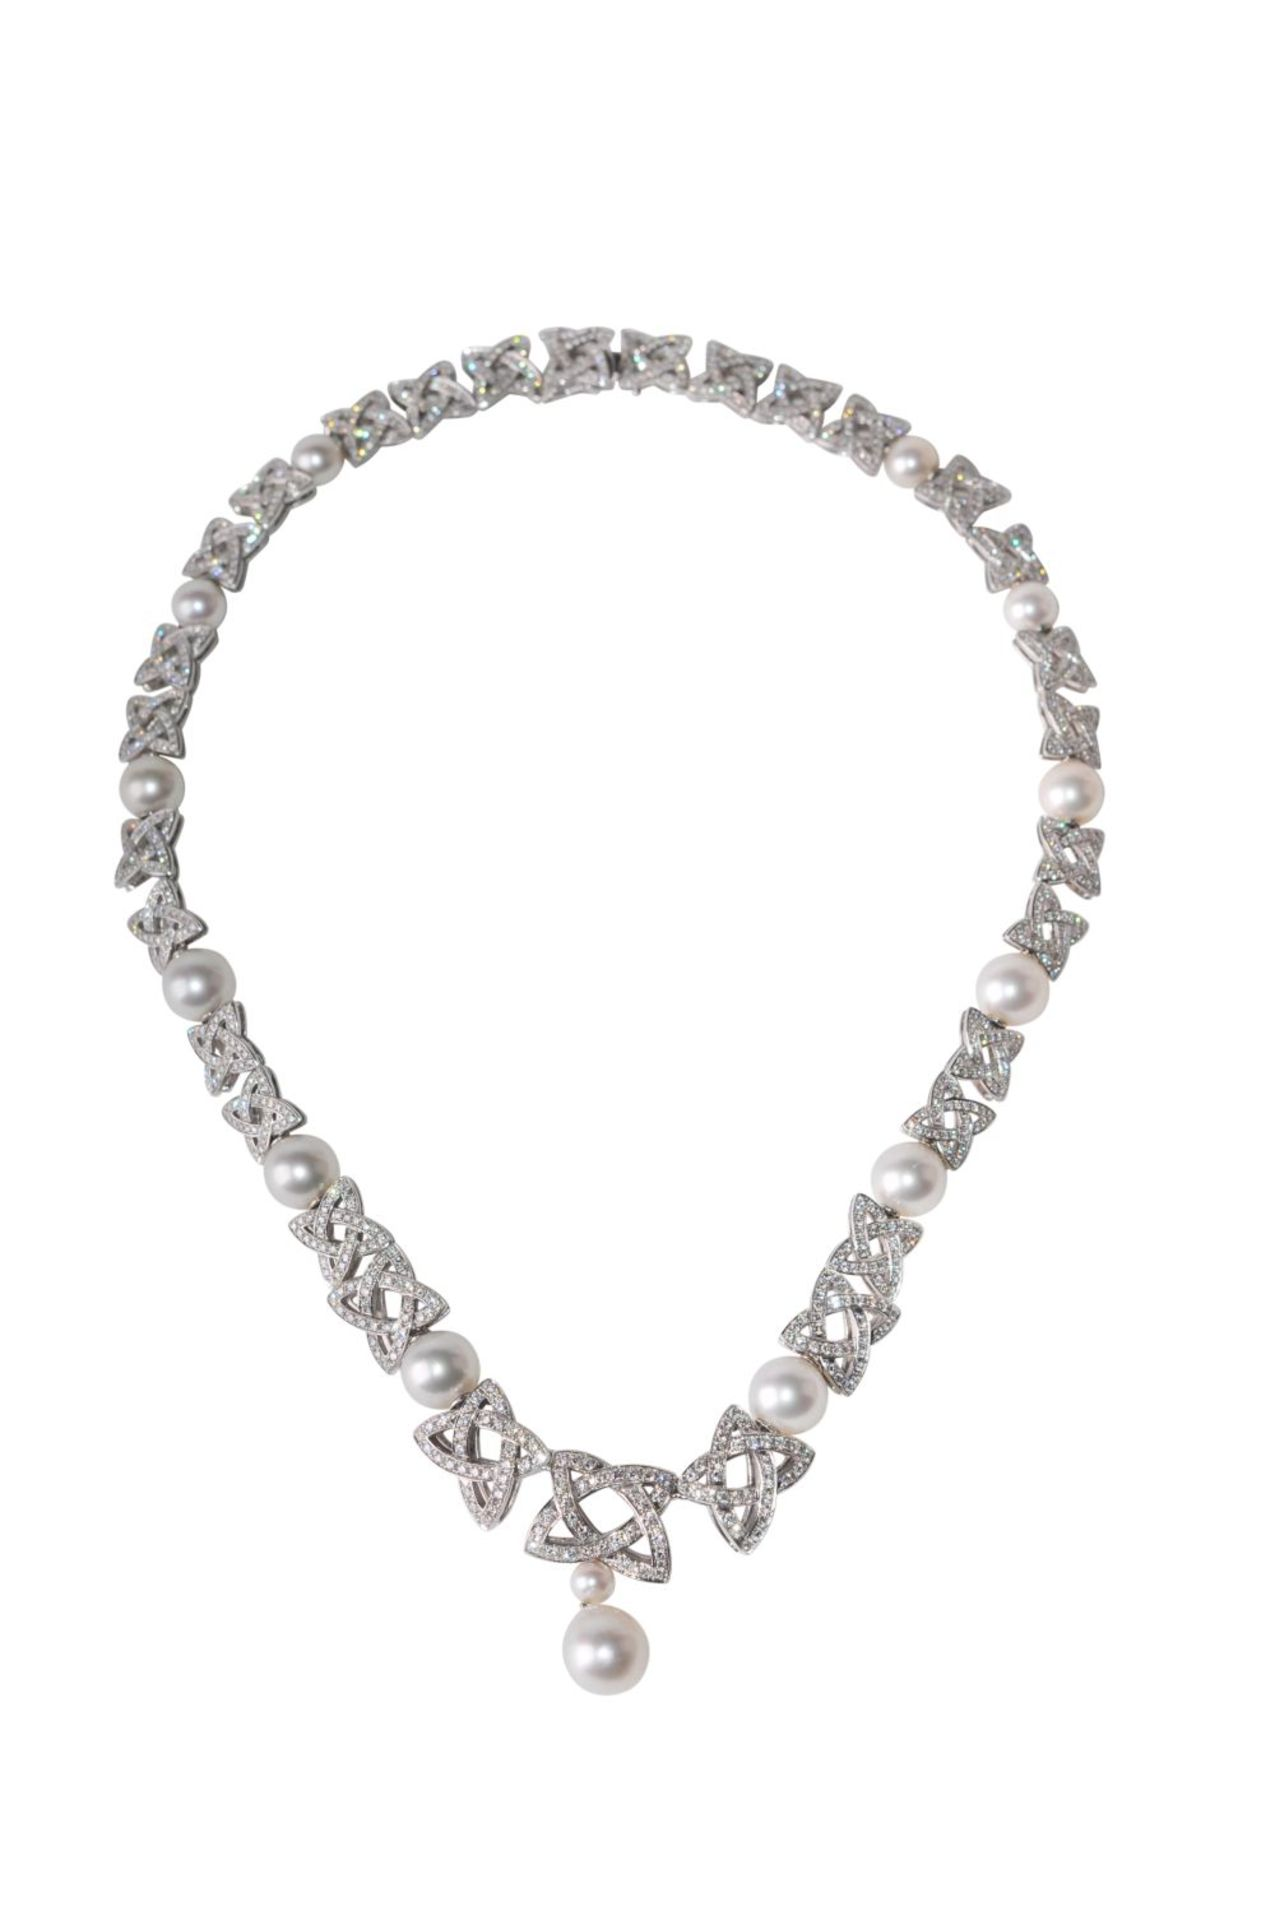 Los 120 - Brillant-Pearl-Necklace18kt white gold Necklace with brilliants total weight approx. 8ct and South